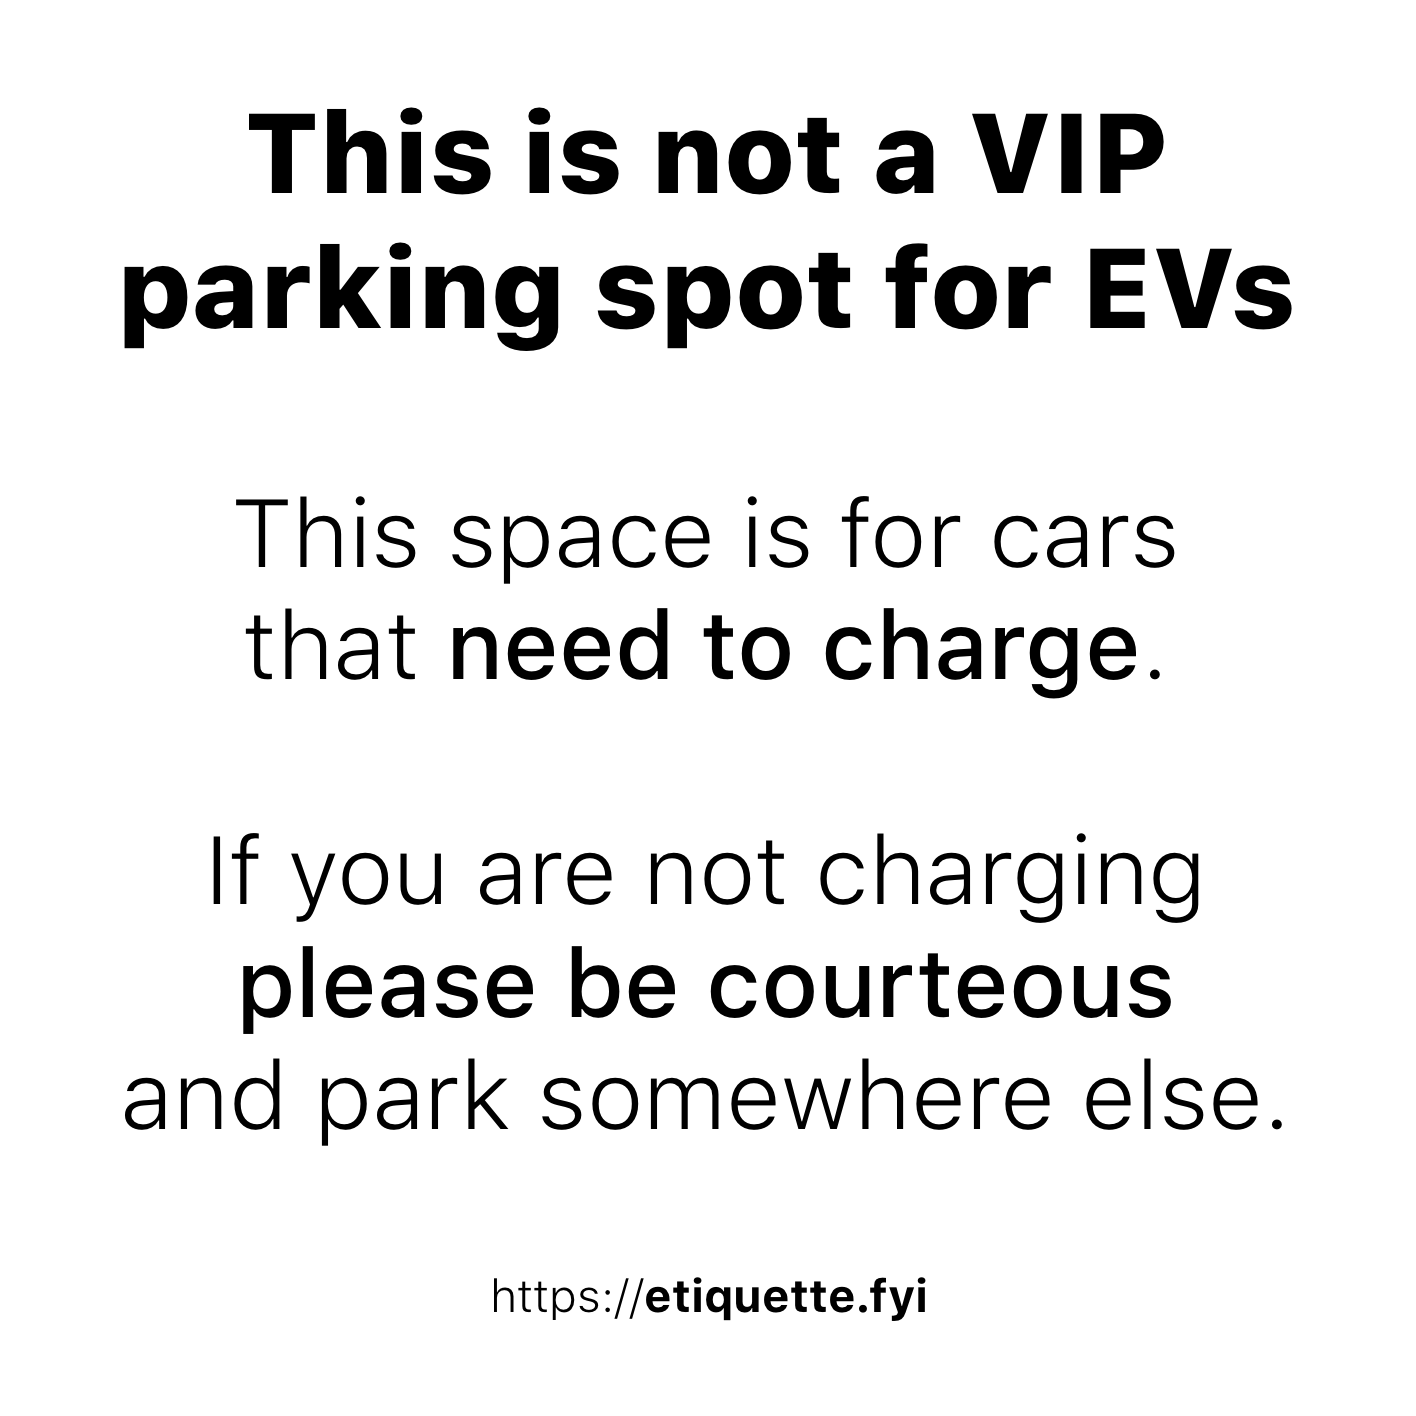 This is not a VIP parking spot flyer